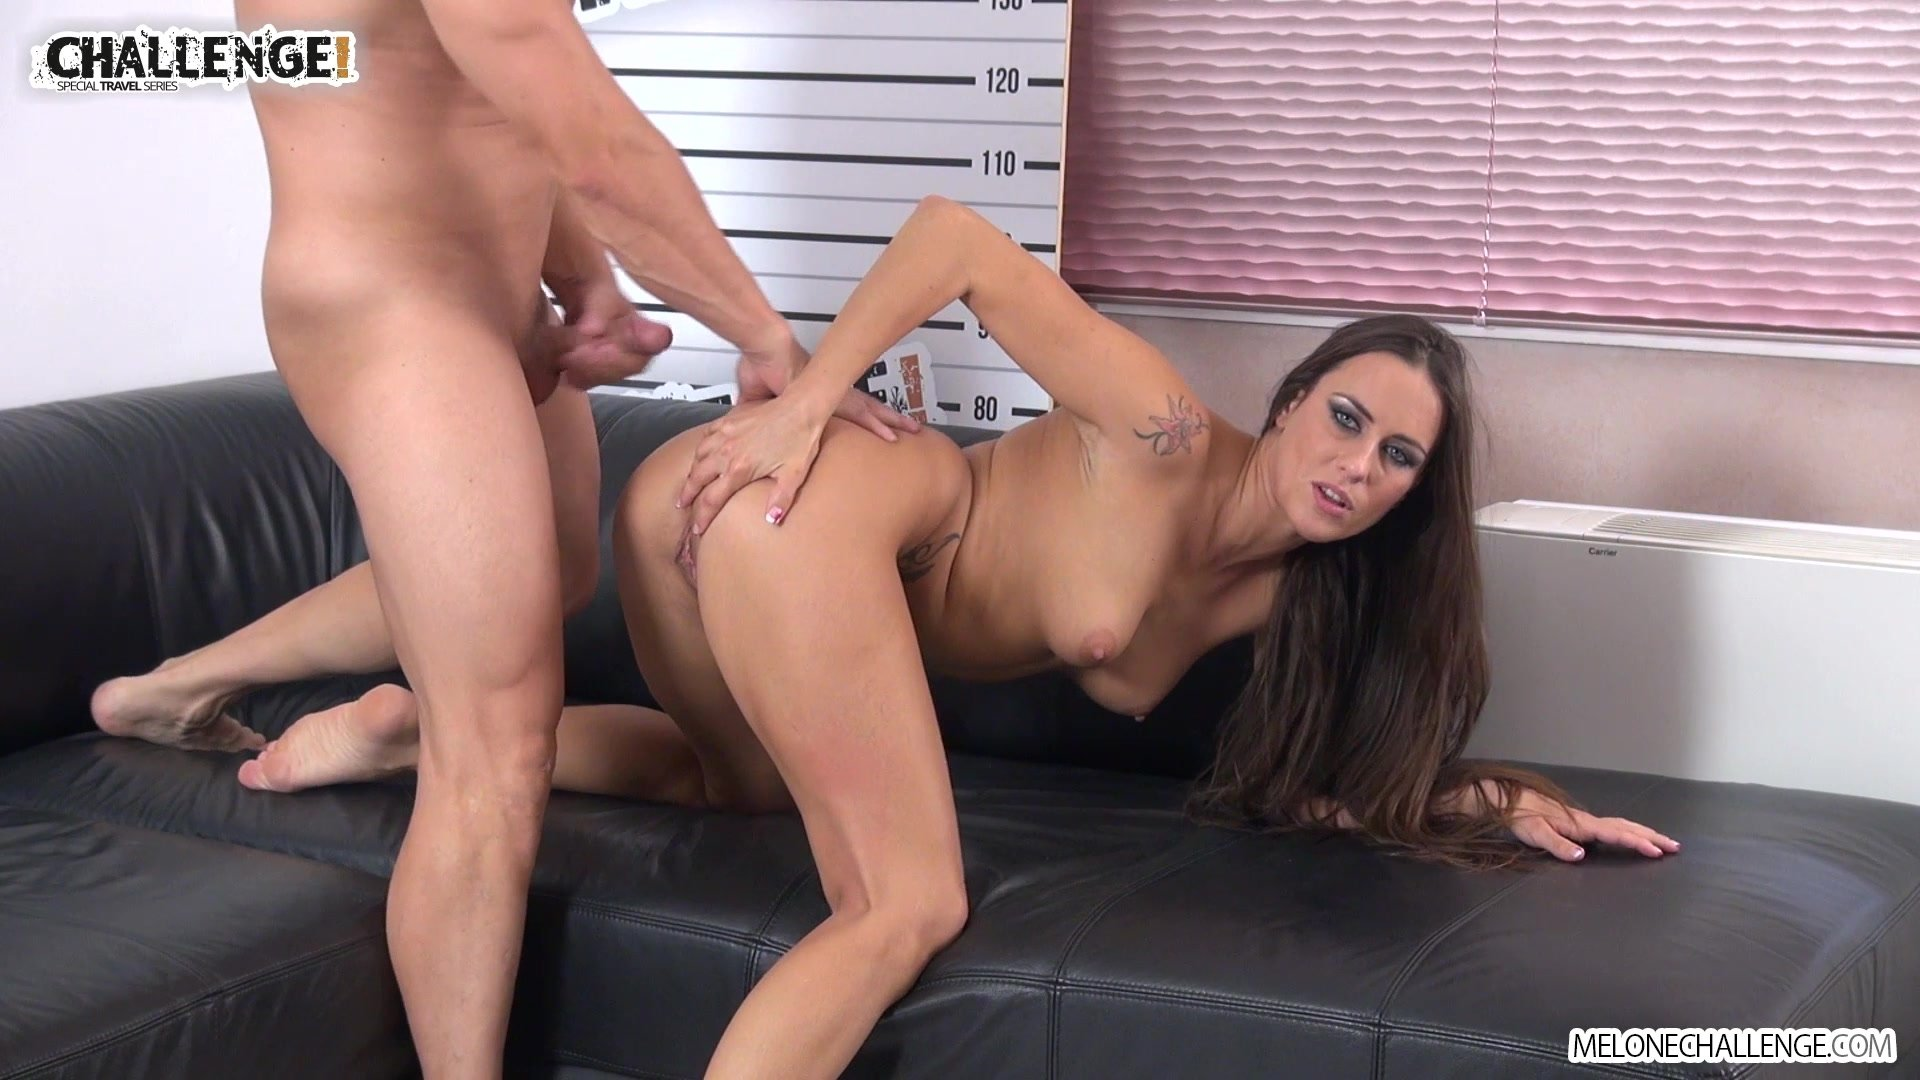 Riding huge anal dildo Hot sex nude yesilcam seks